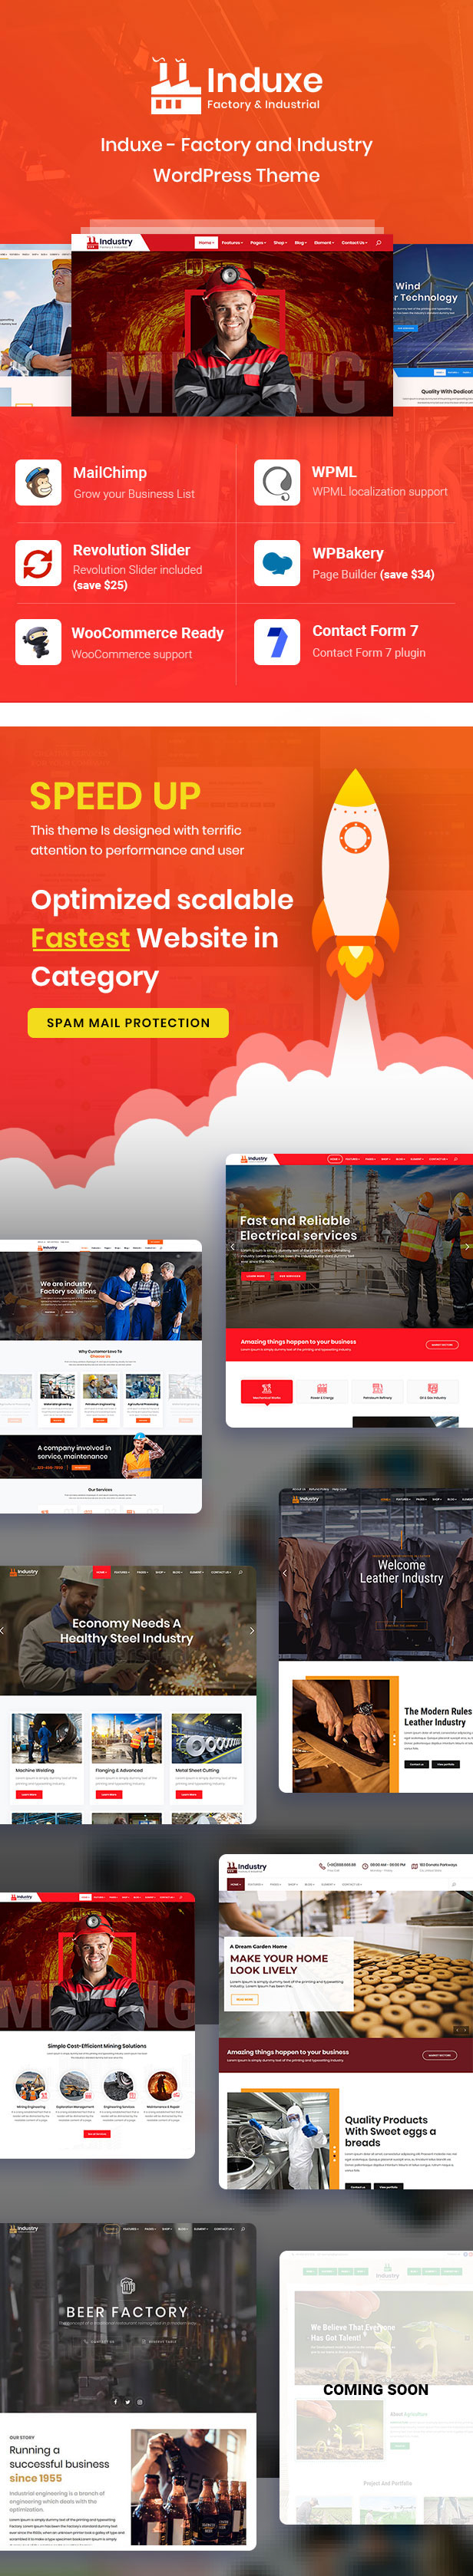 Induxe - Factory and Industry WordPress - 1